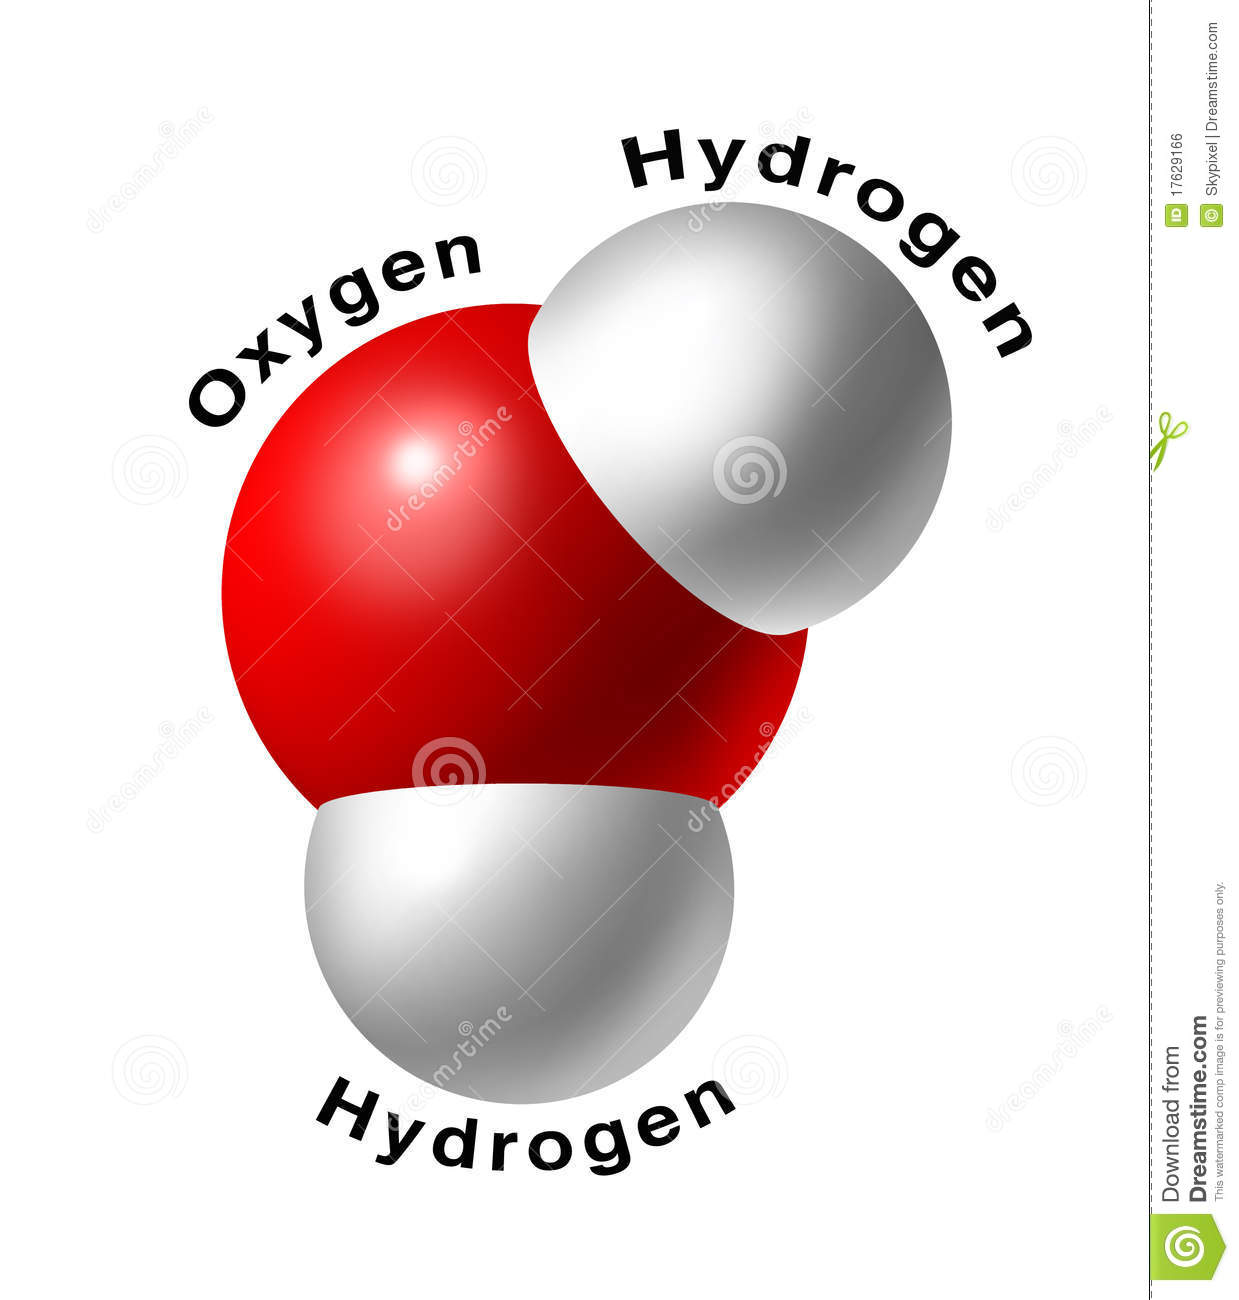 Water Molecule H2o Isolated Oxygen Hydrogen Red Wh Royalty Free Stock ...